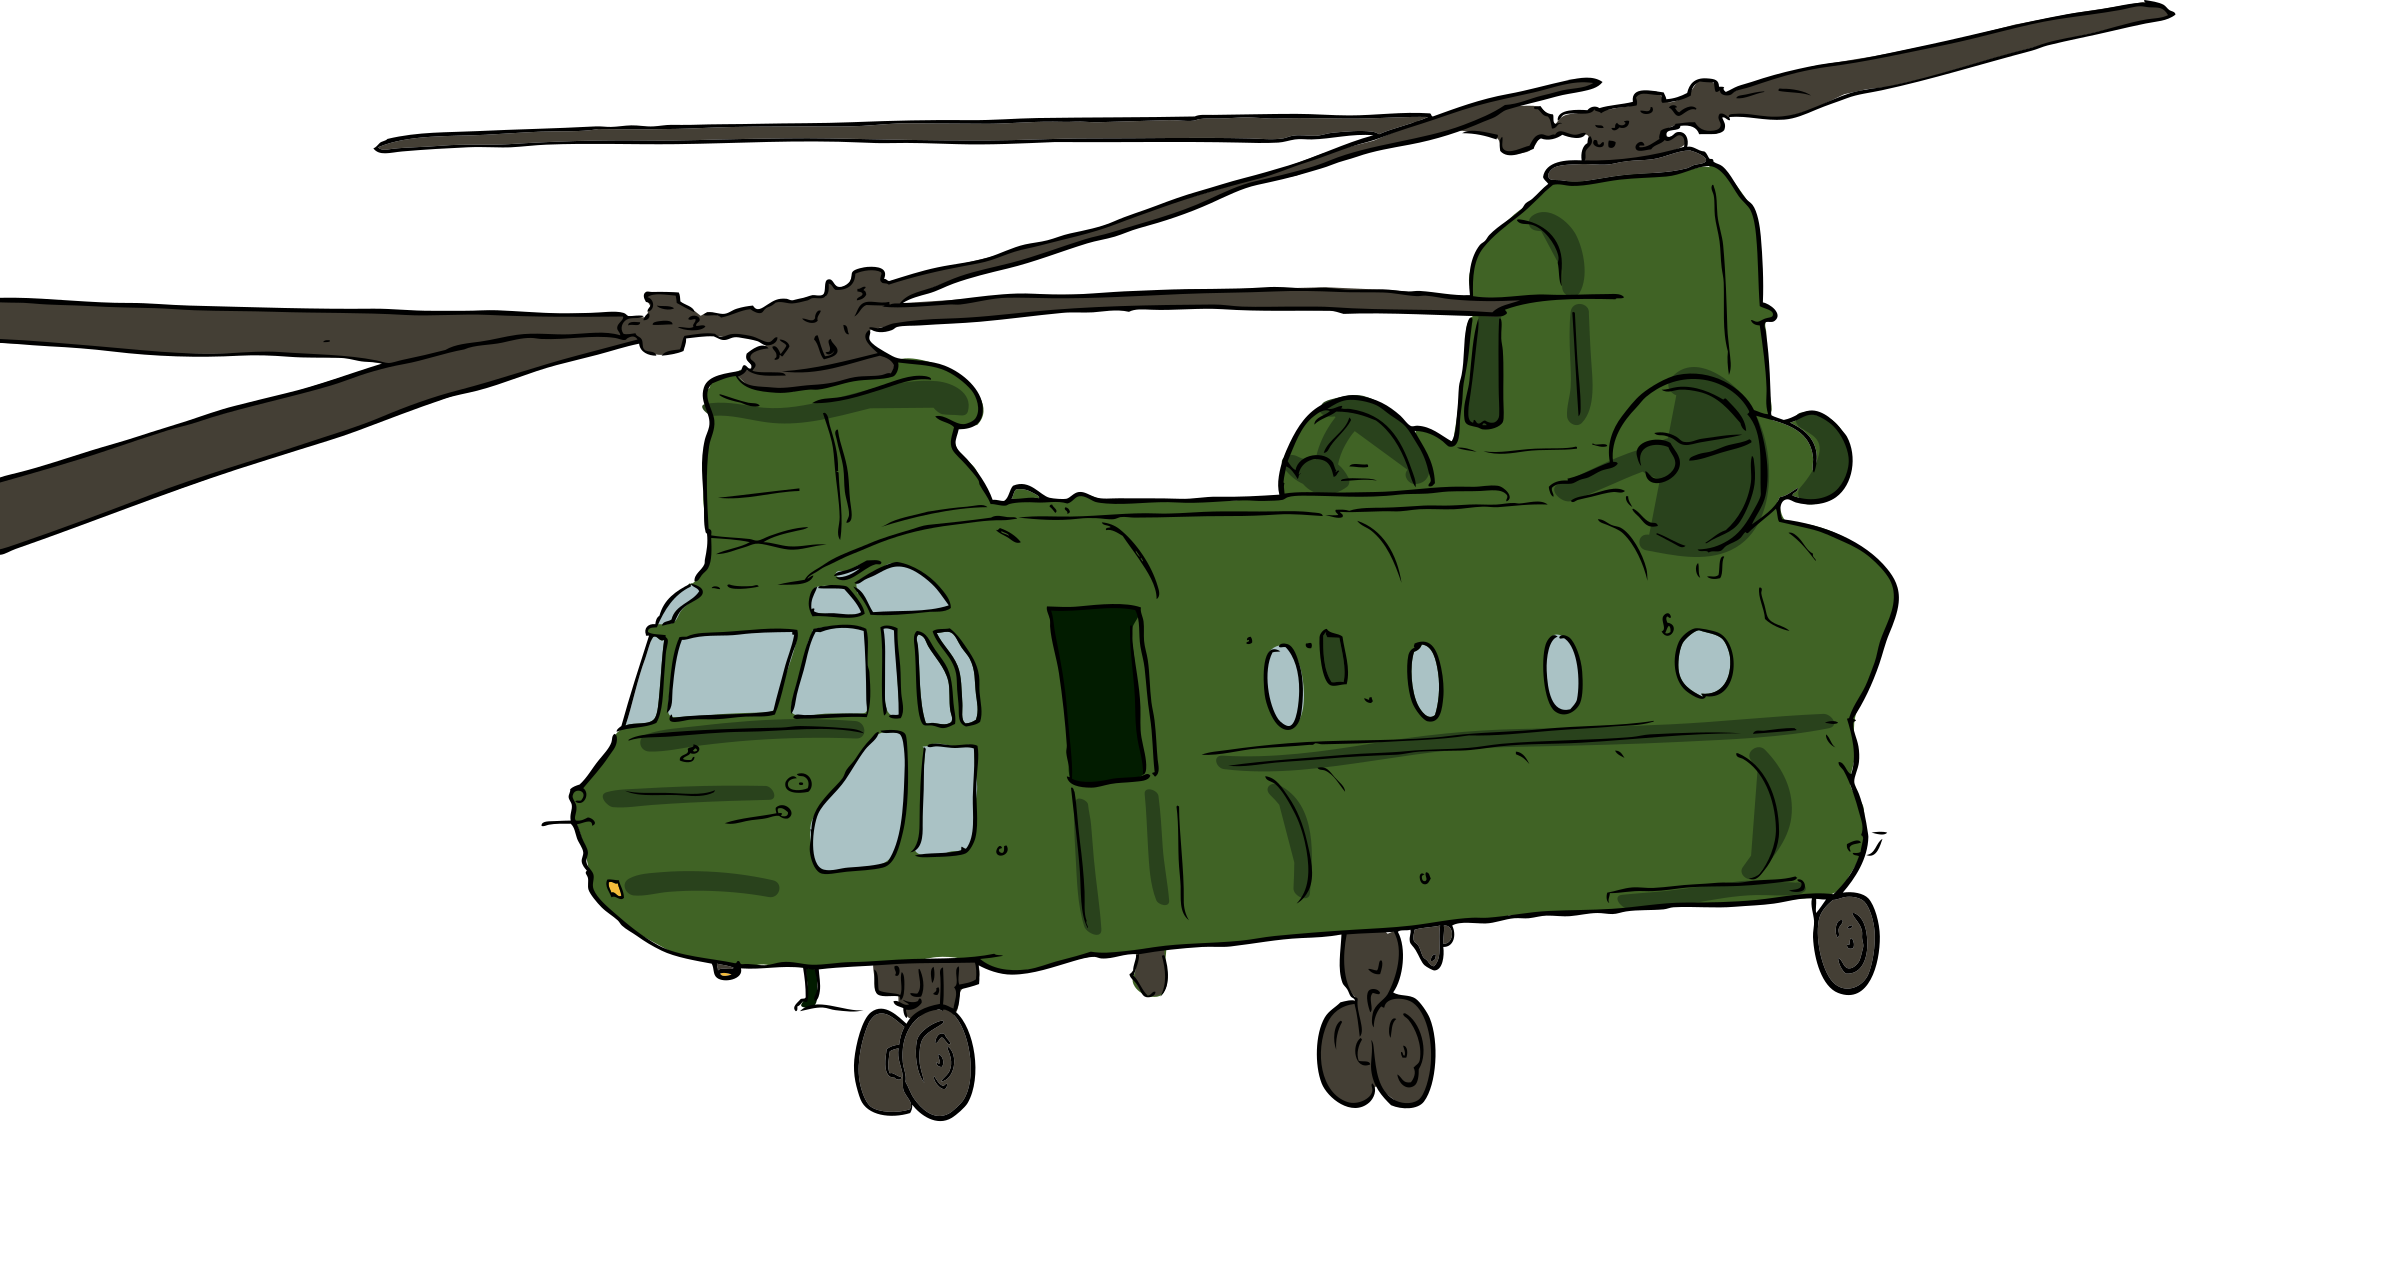 Drawn helicopter chinook helicopter Helicopter 1 Chinook Clipart Helicopter